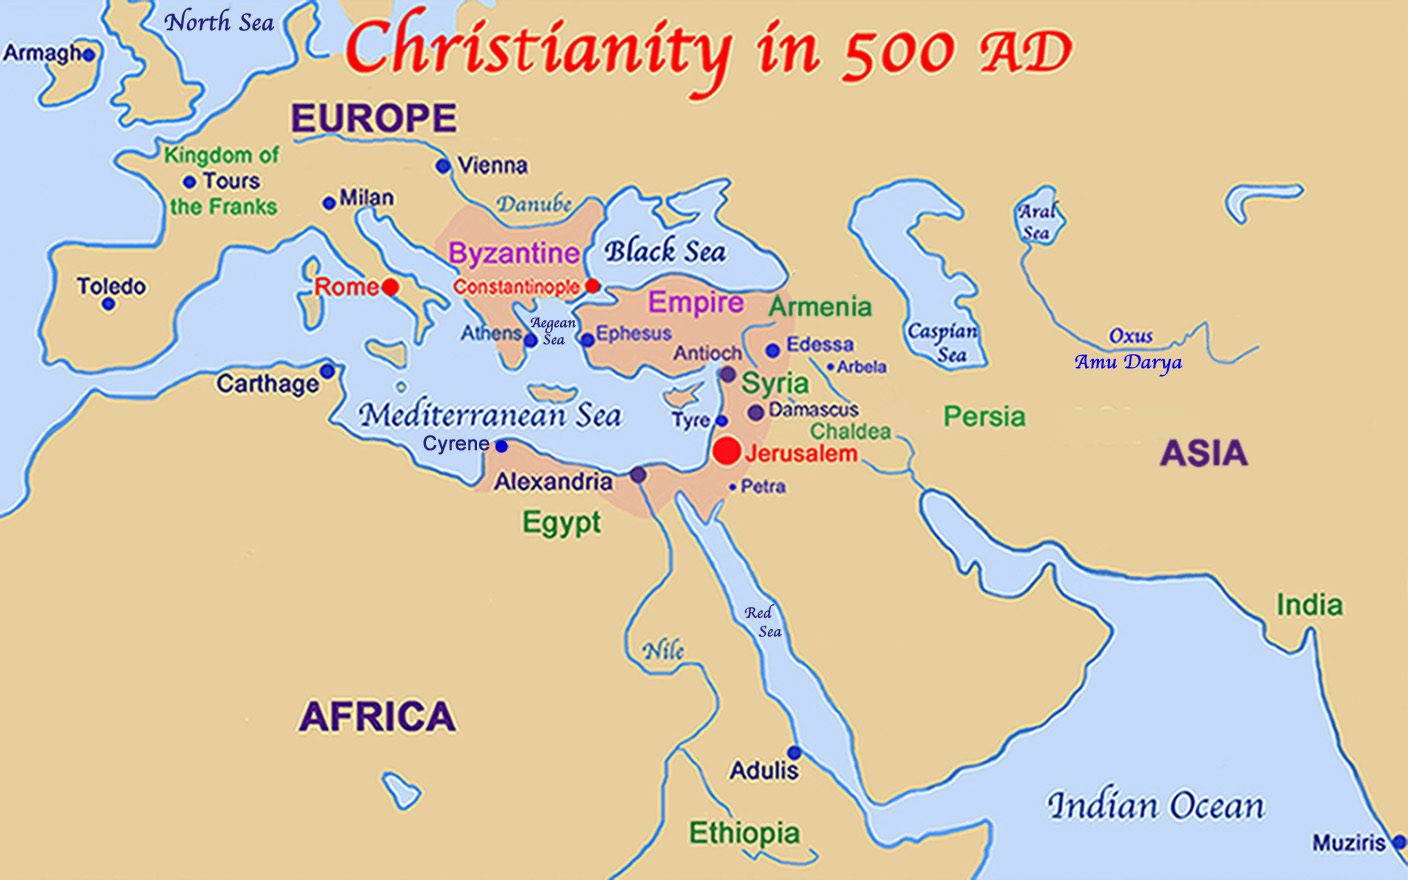 Spread of Christianity Among People Groups